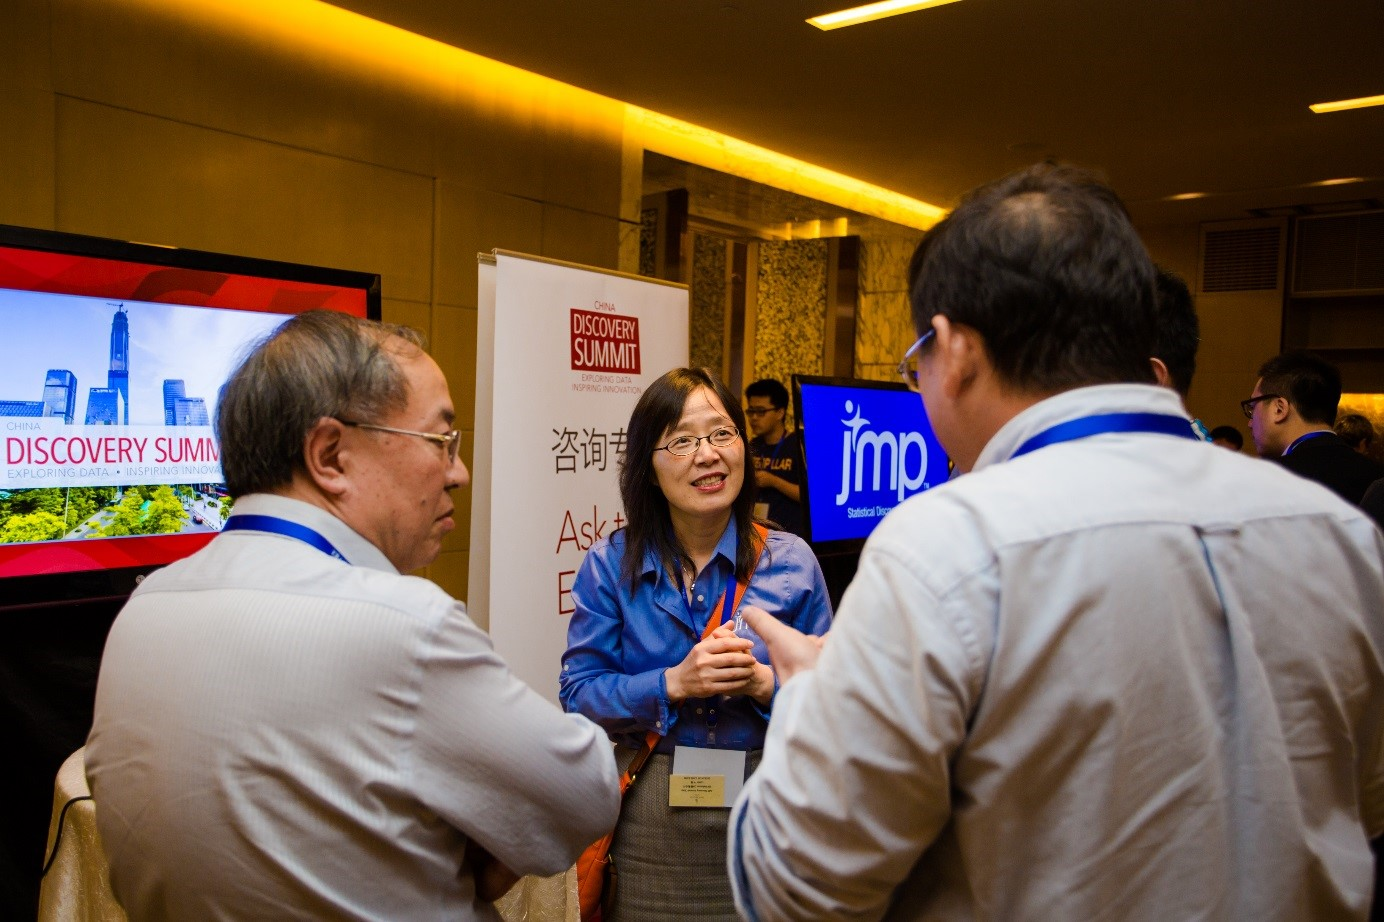 Jianfeng Ding talks with attendees during an Ask the Experts session.